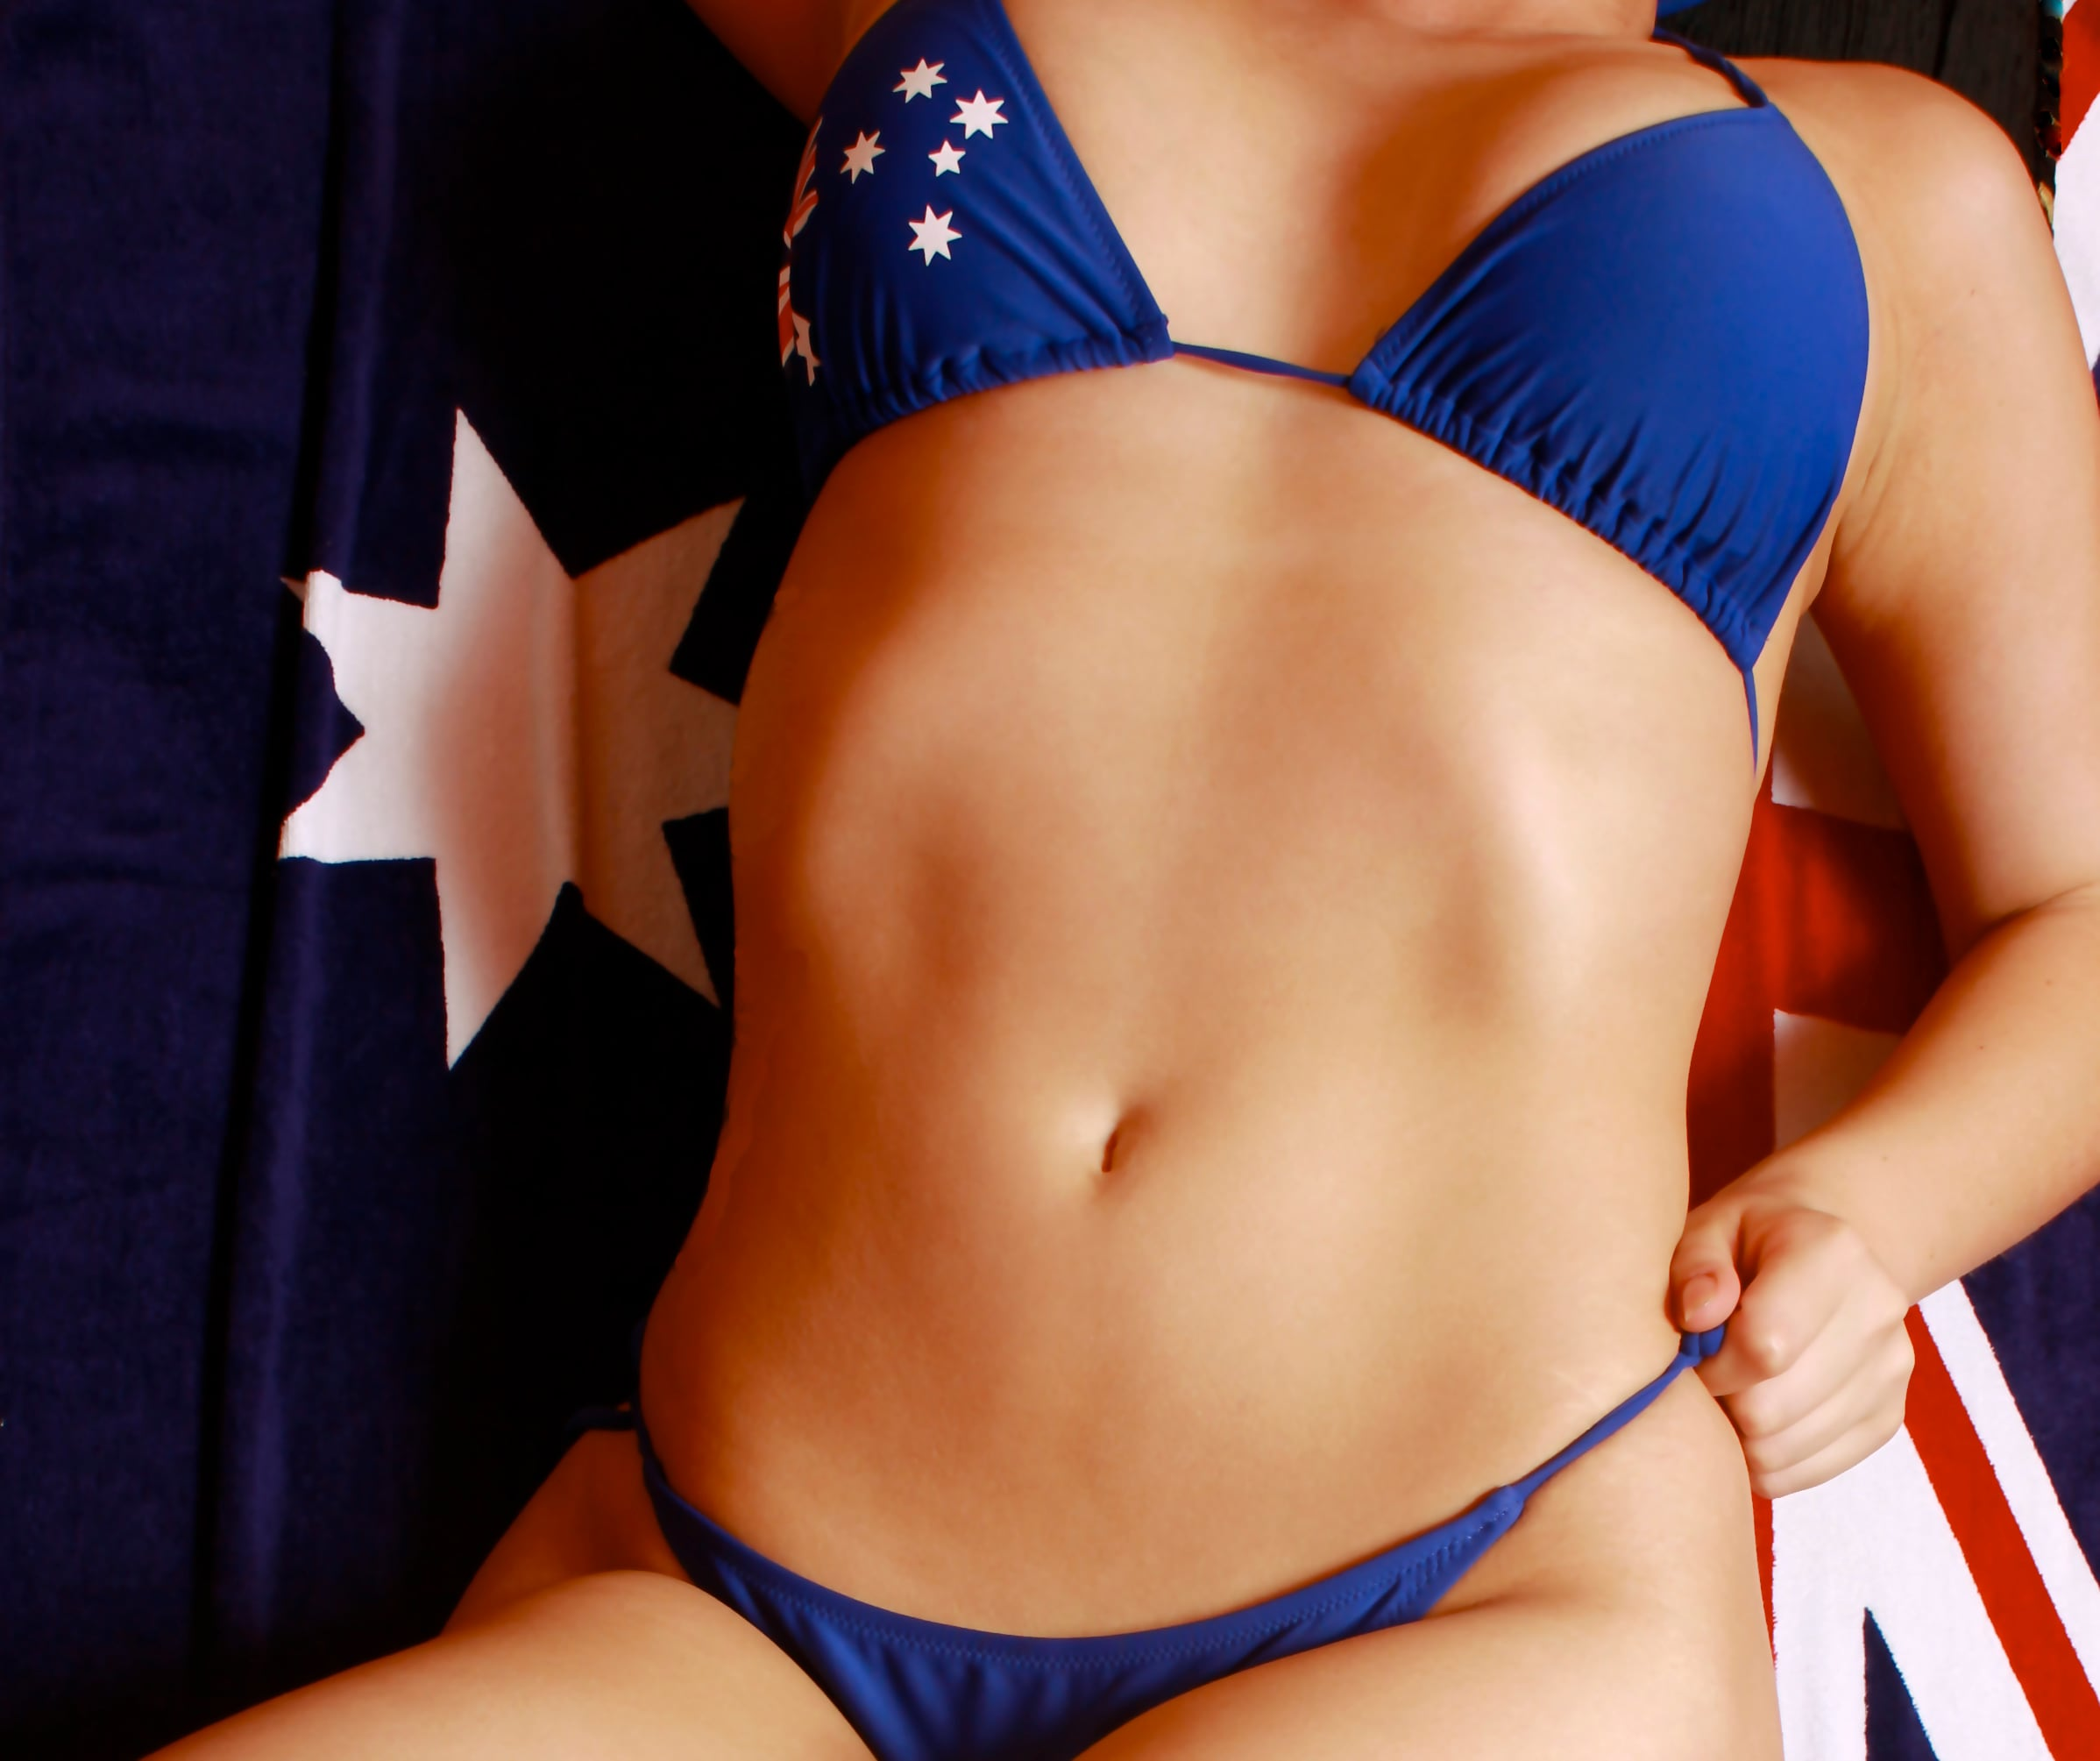 Asian escorts adelaide